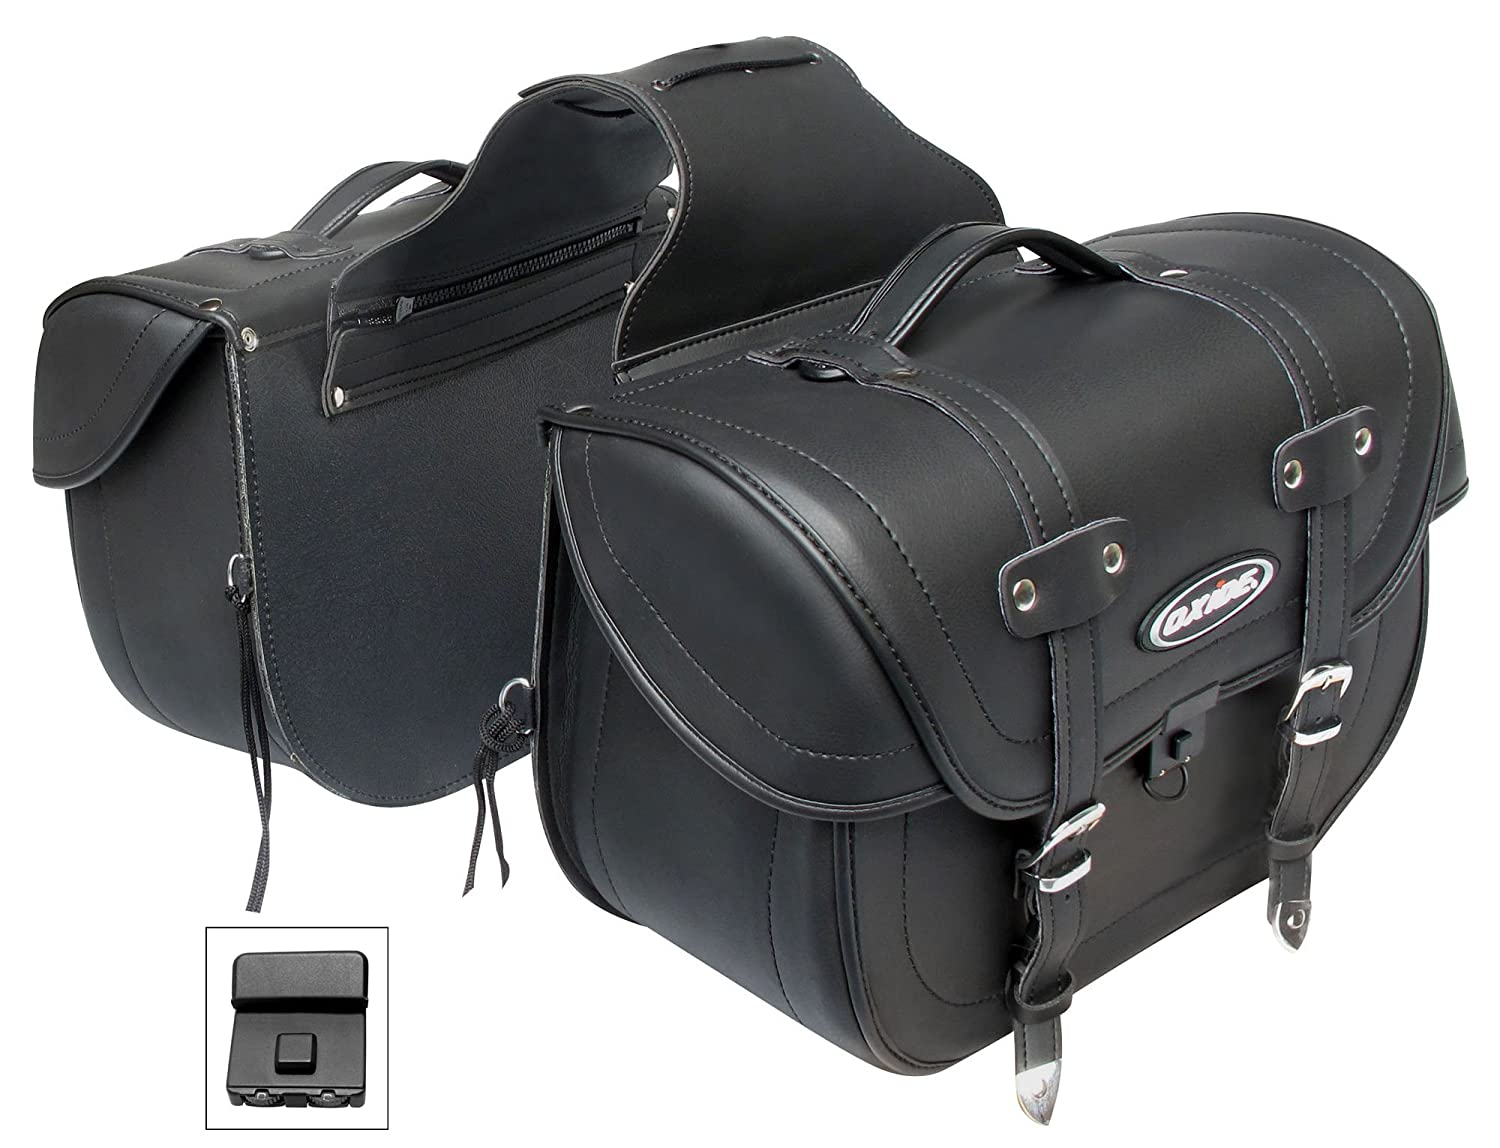 Deluxe Tek Leather Motorcycle Panniers Saddle bags, Cruiser Travel Bags WS-1000 Oxide